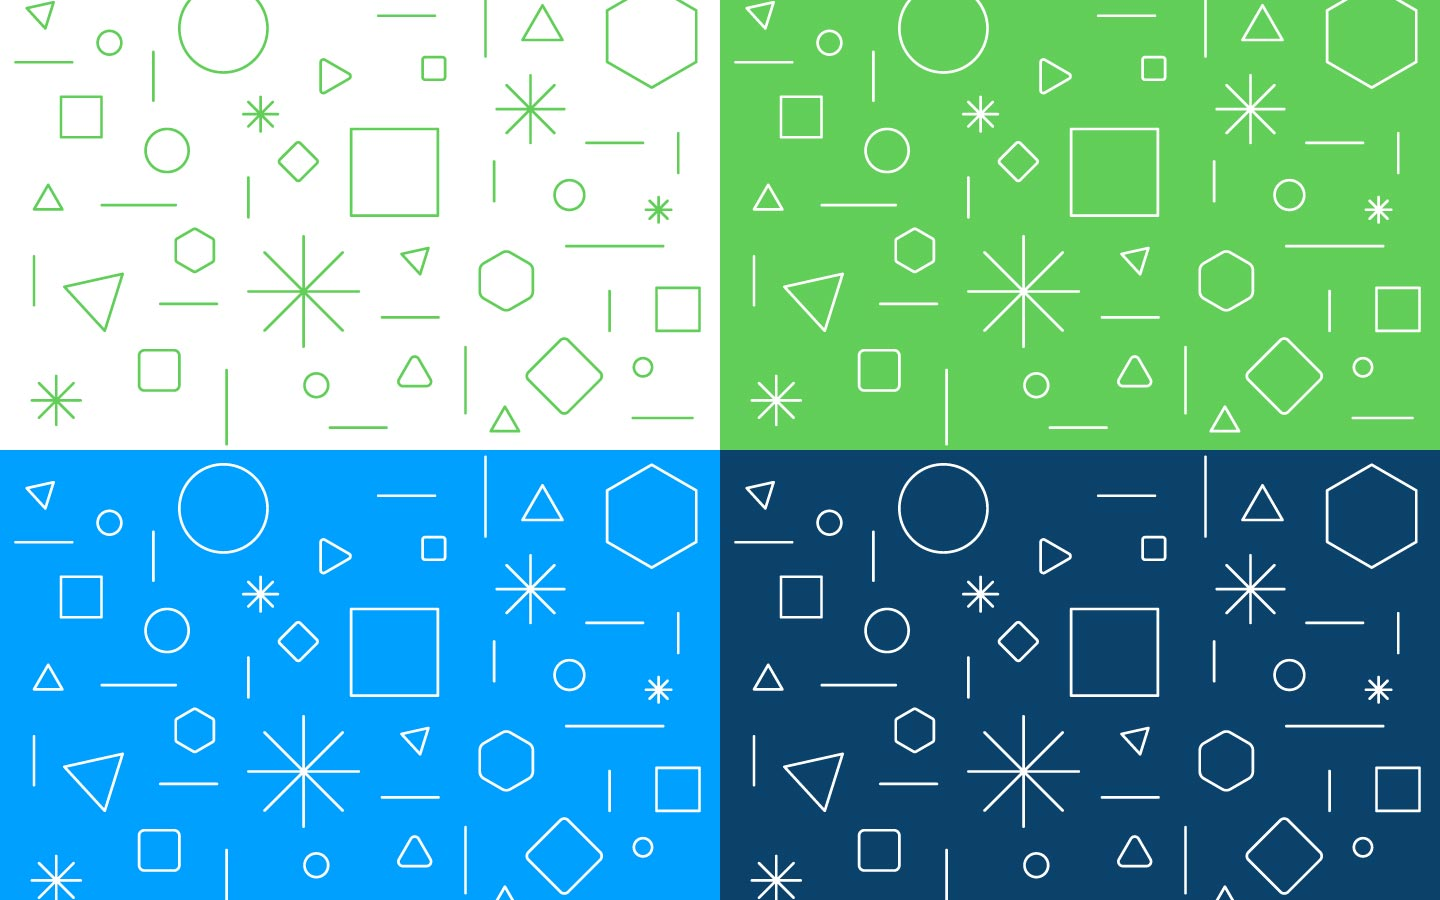 Youth innovation center brand pattern